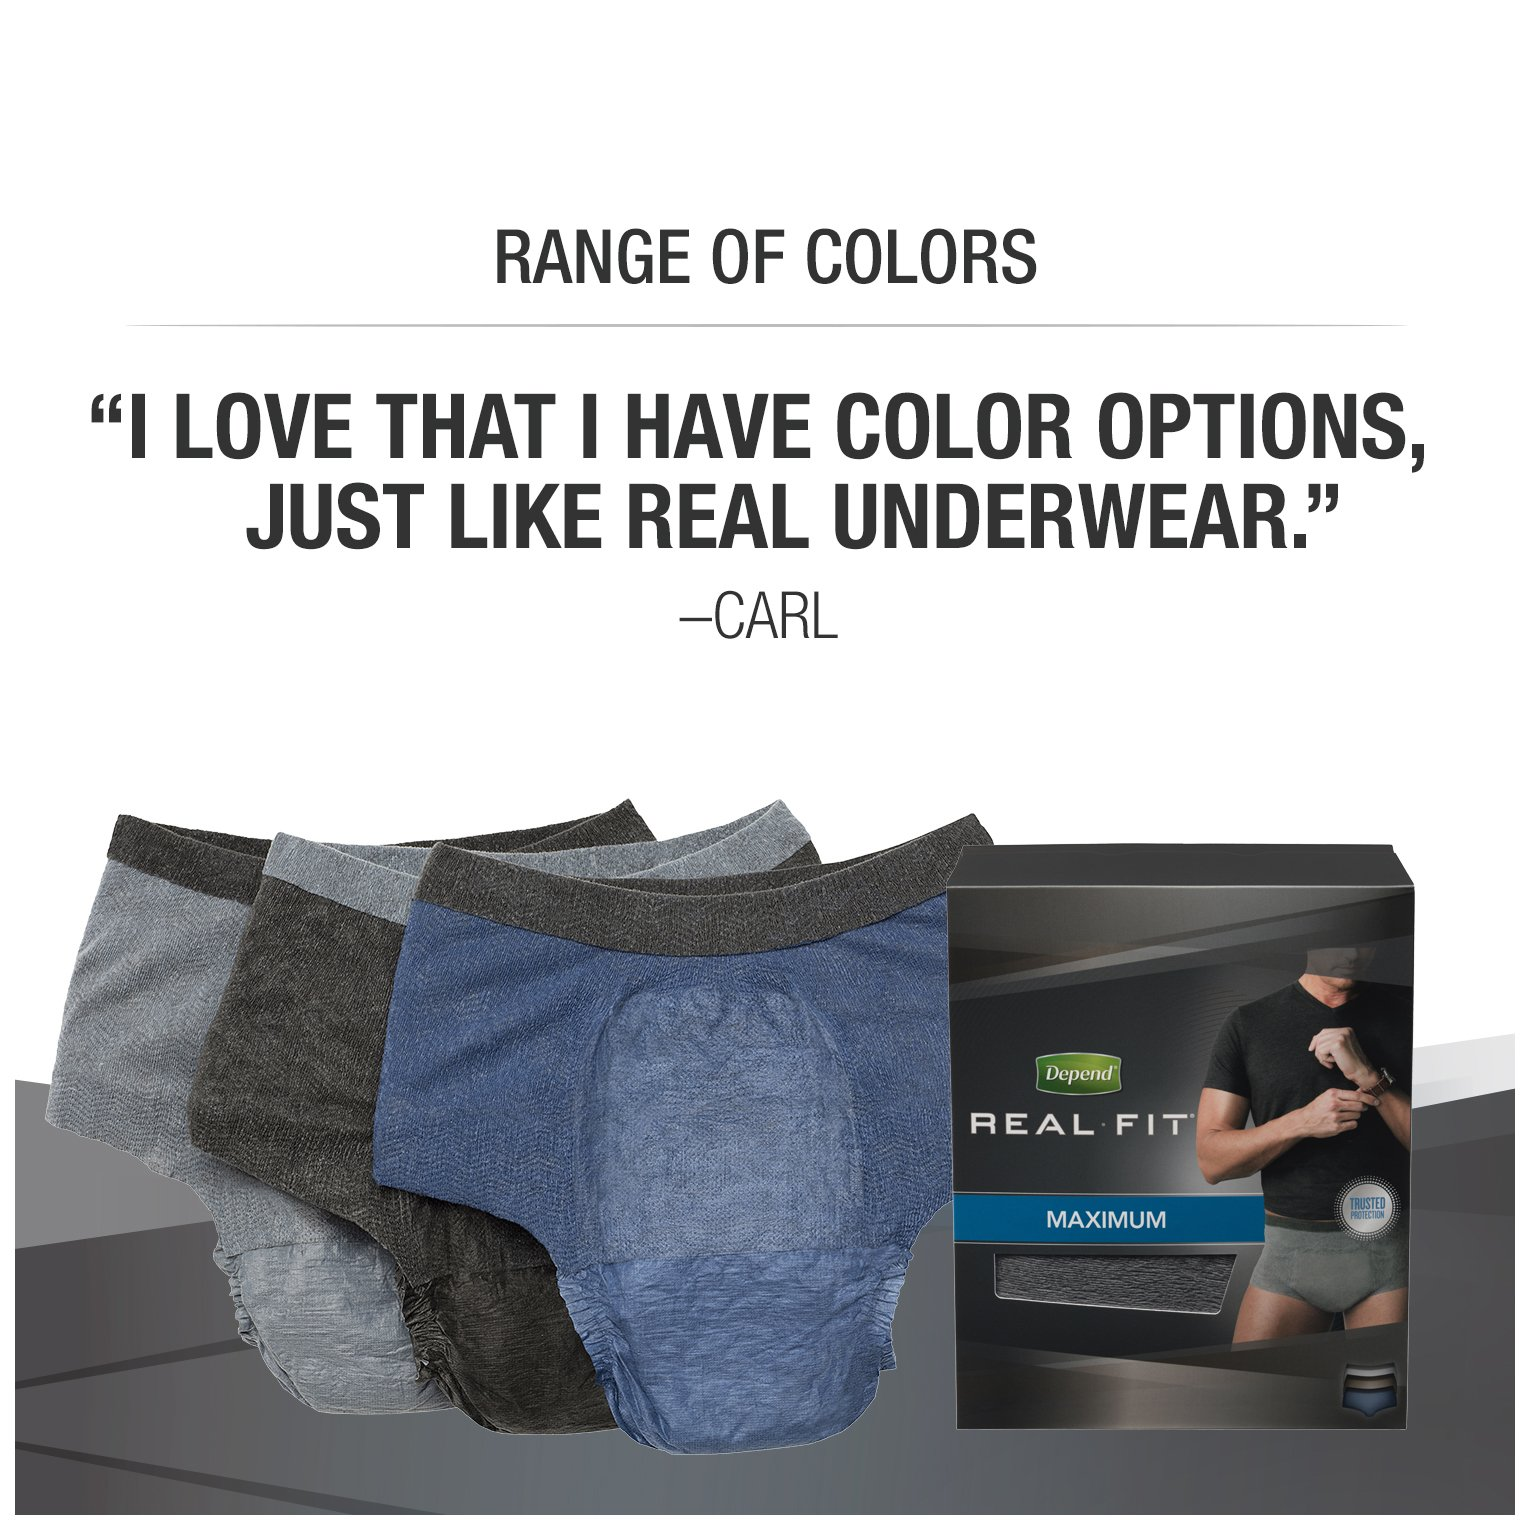 Depend Real Fit Incontinence Briefs for Men, Maximum Absorbency, S/M, Grey by Depend (Image #10)